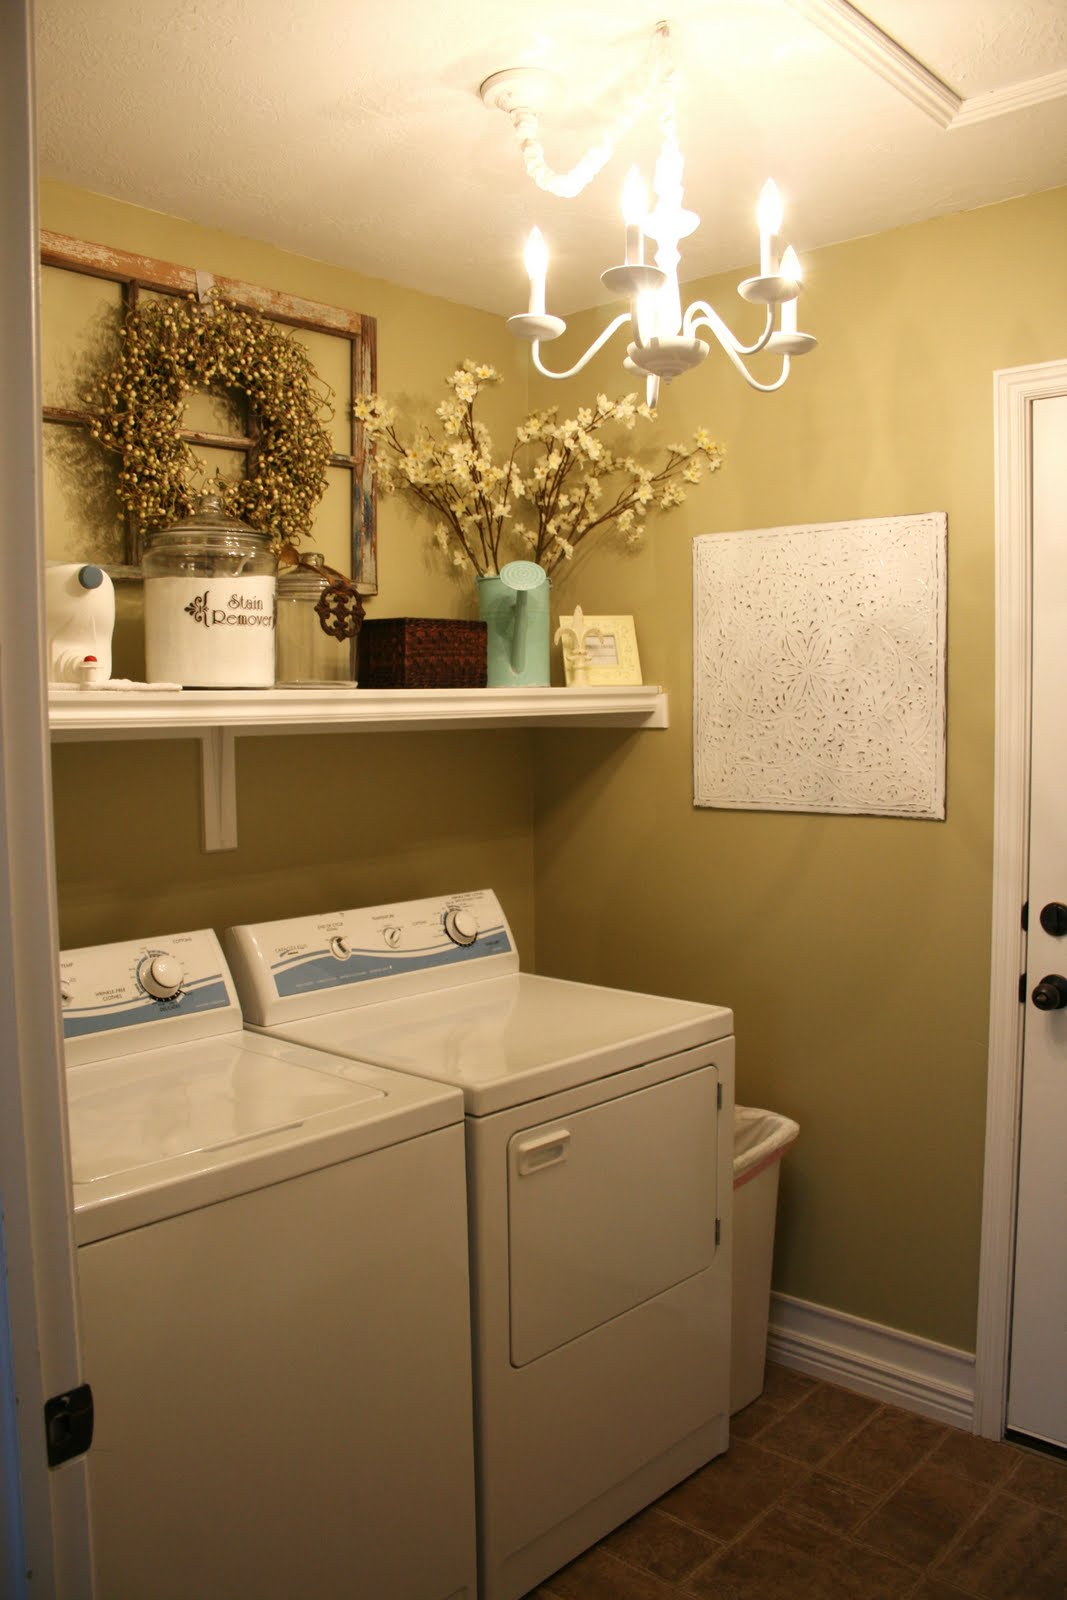 Sassy sites home tour the laundry room Laundry room design